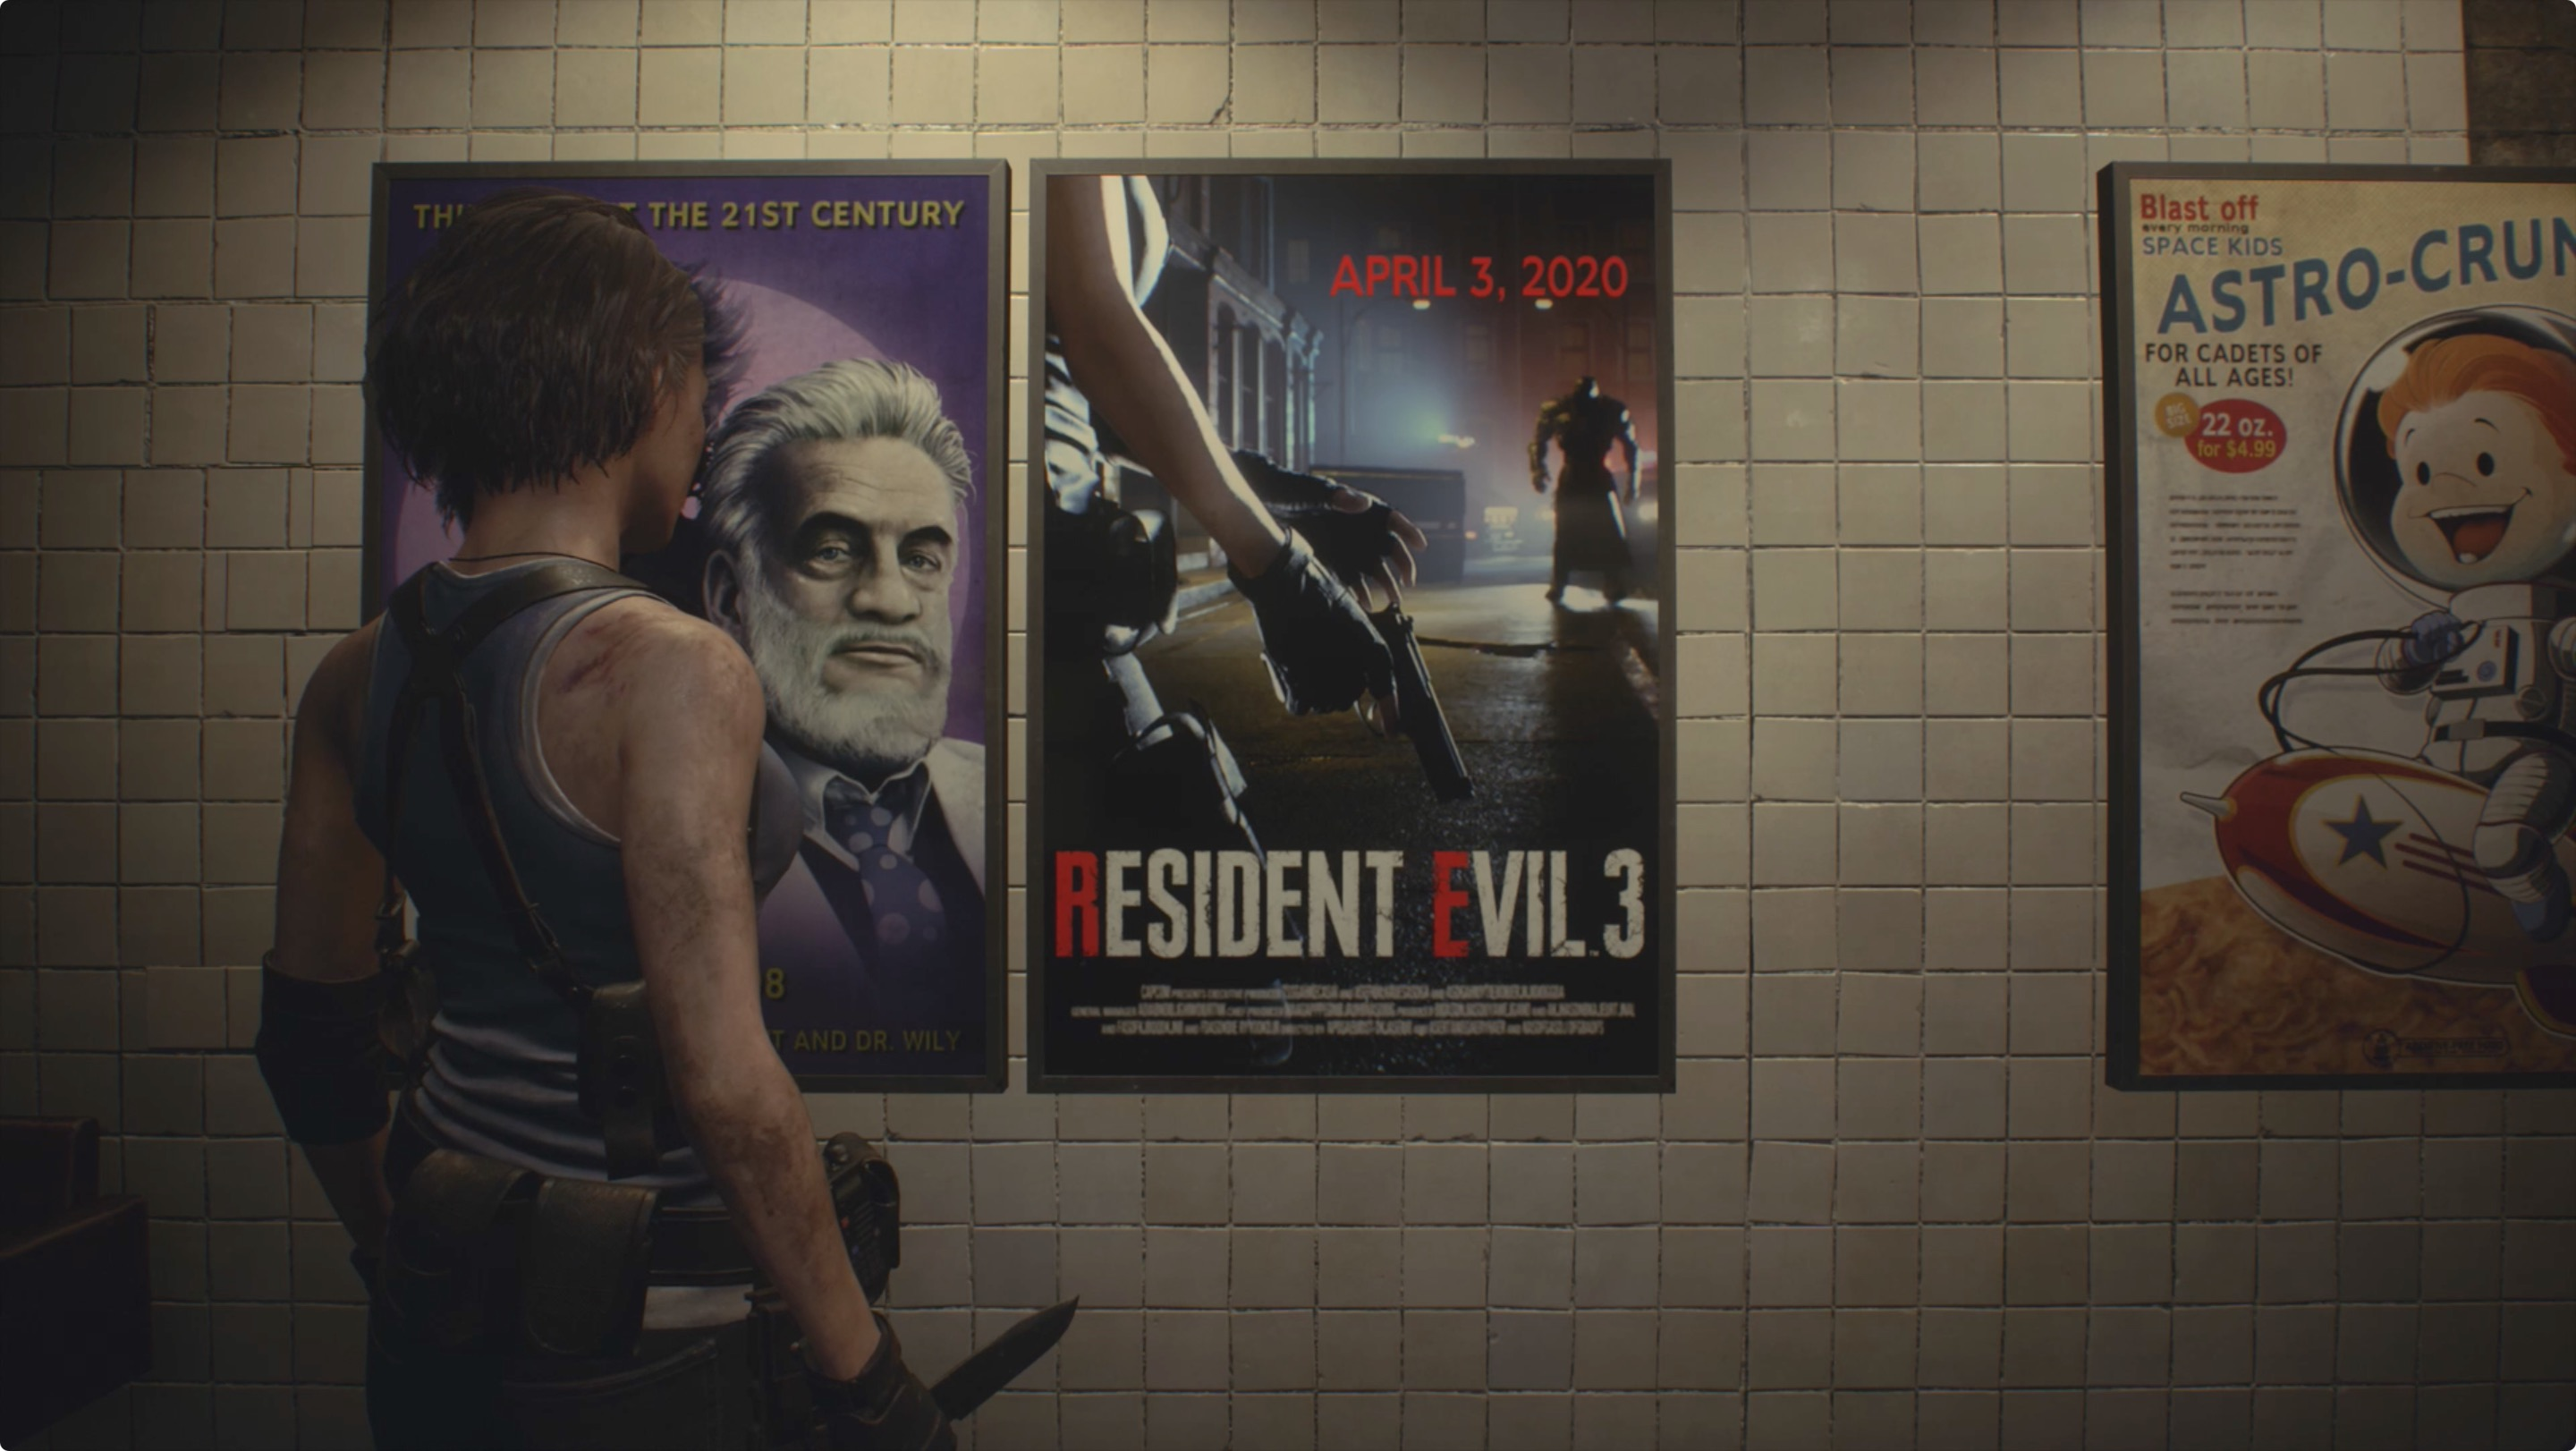 Resident Evil 3: Raccoon City Demo safe code and location